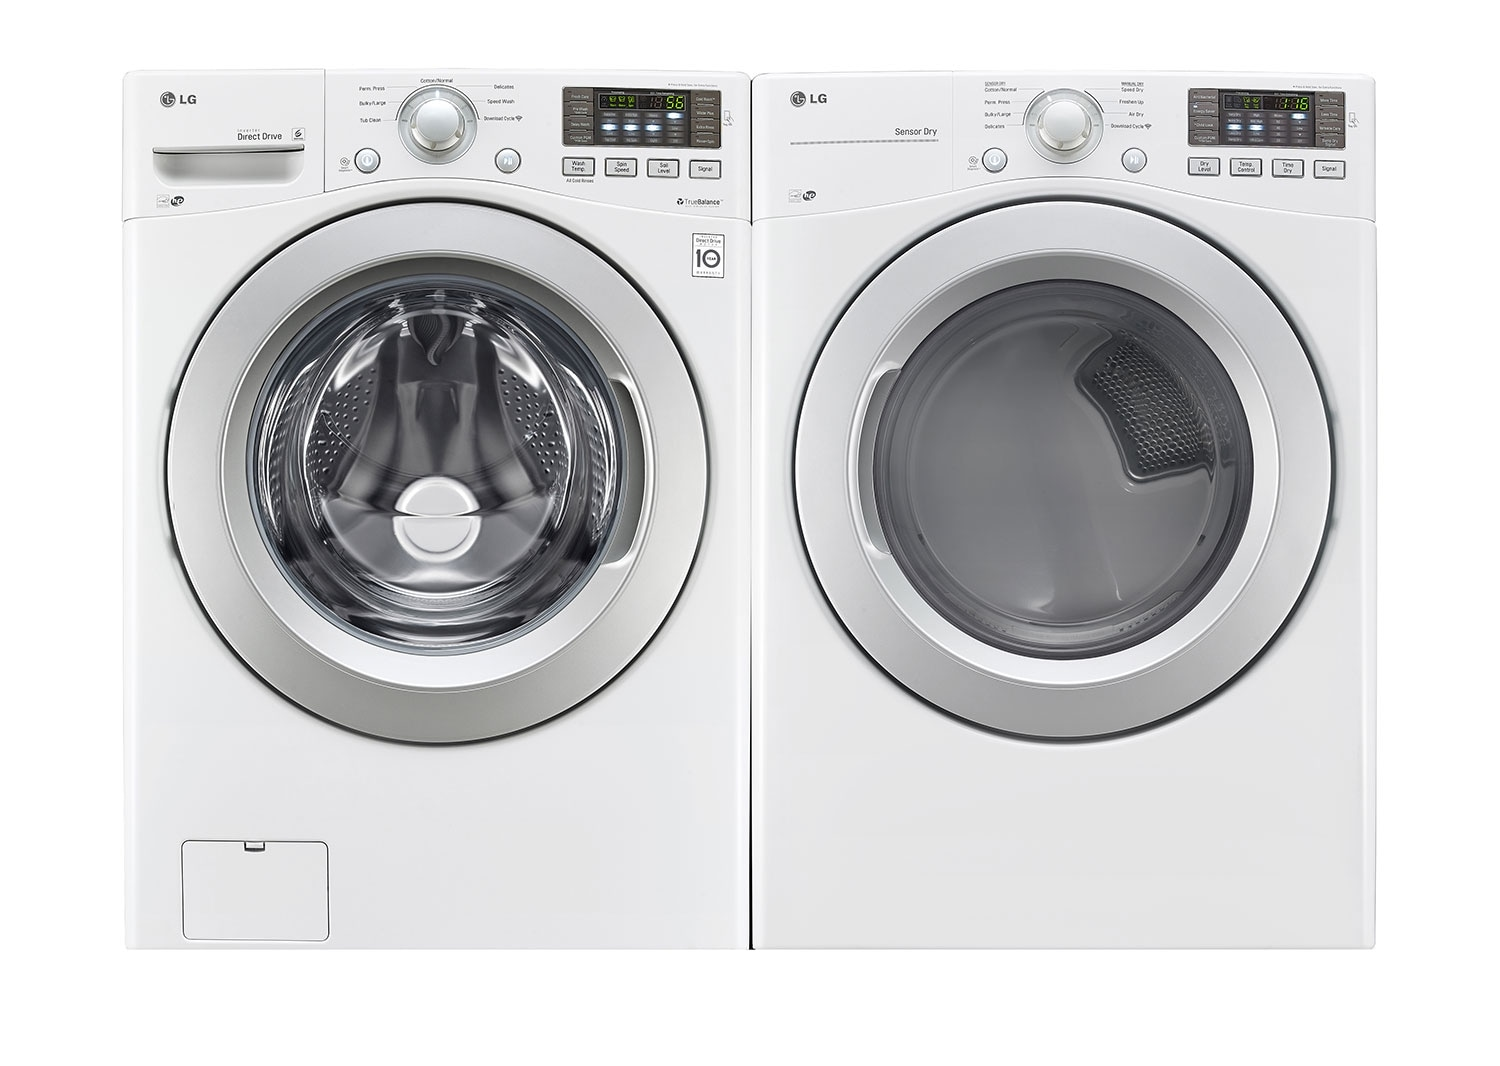 Washers and Dryers - LG 5.0 Cu. Ft. Front-Load Washer and 7.4 Cu. Ft. Electric Dryer